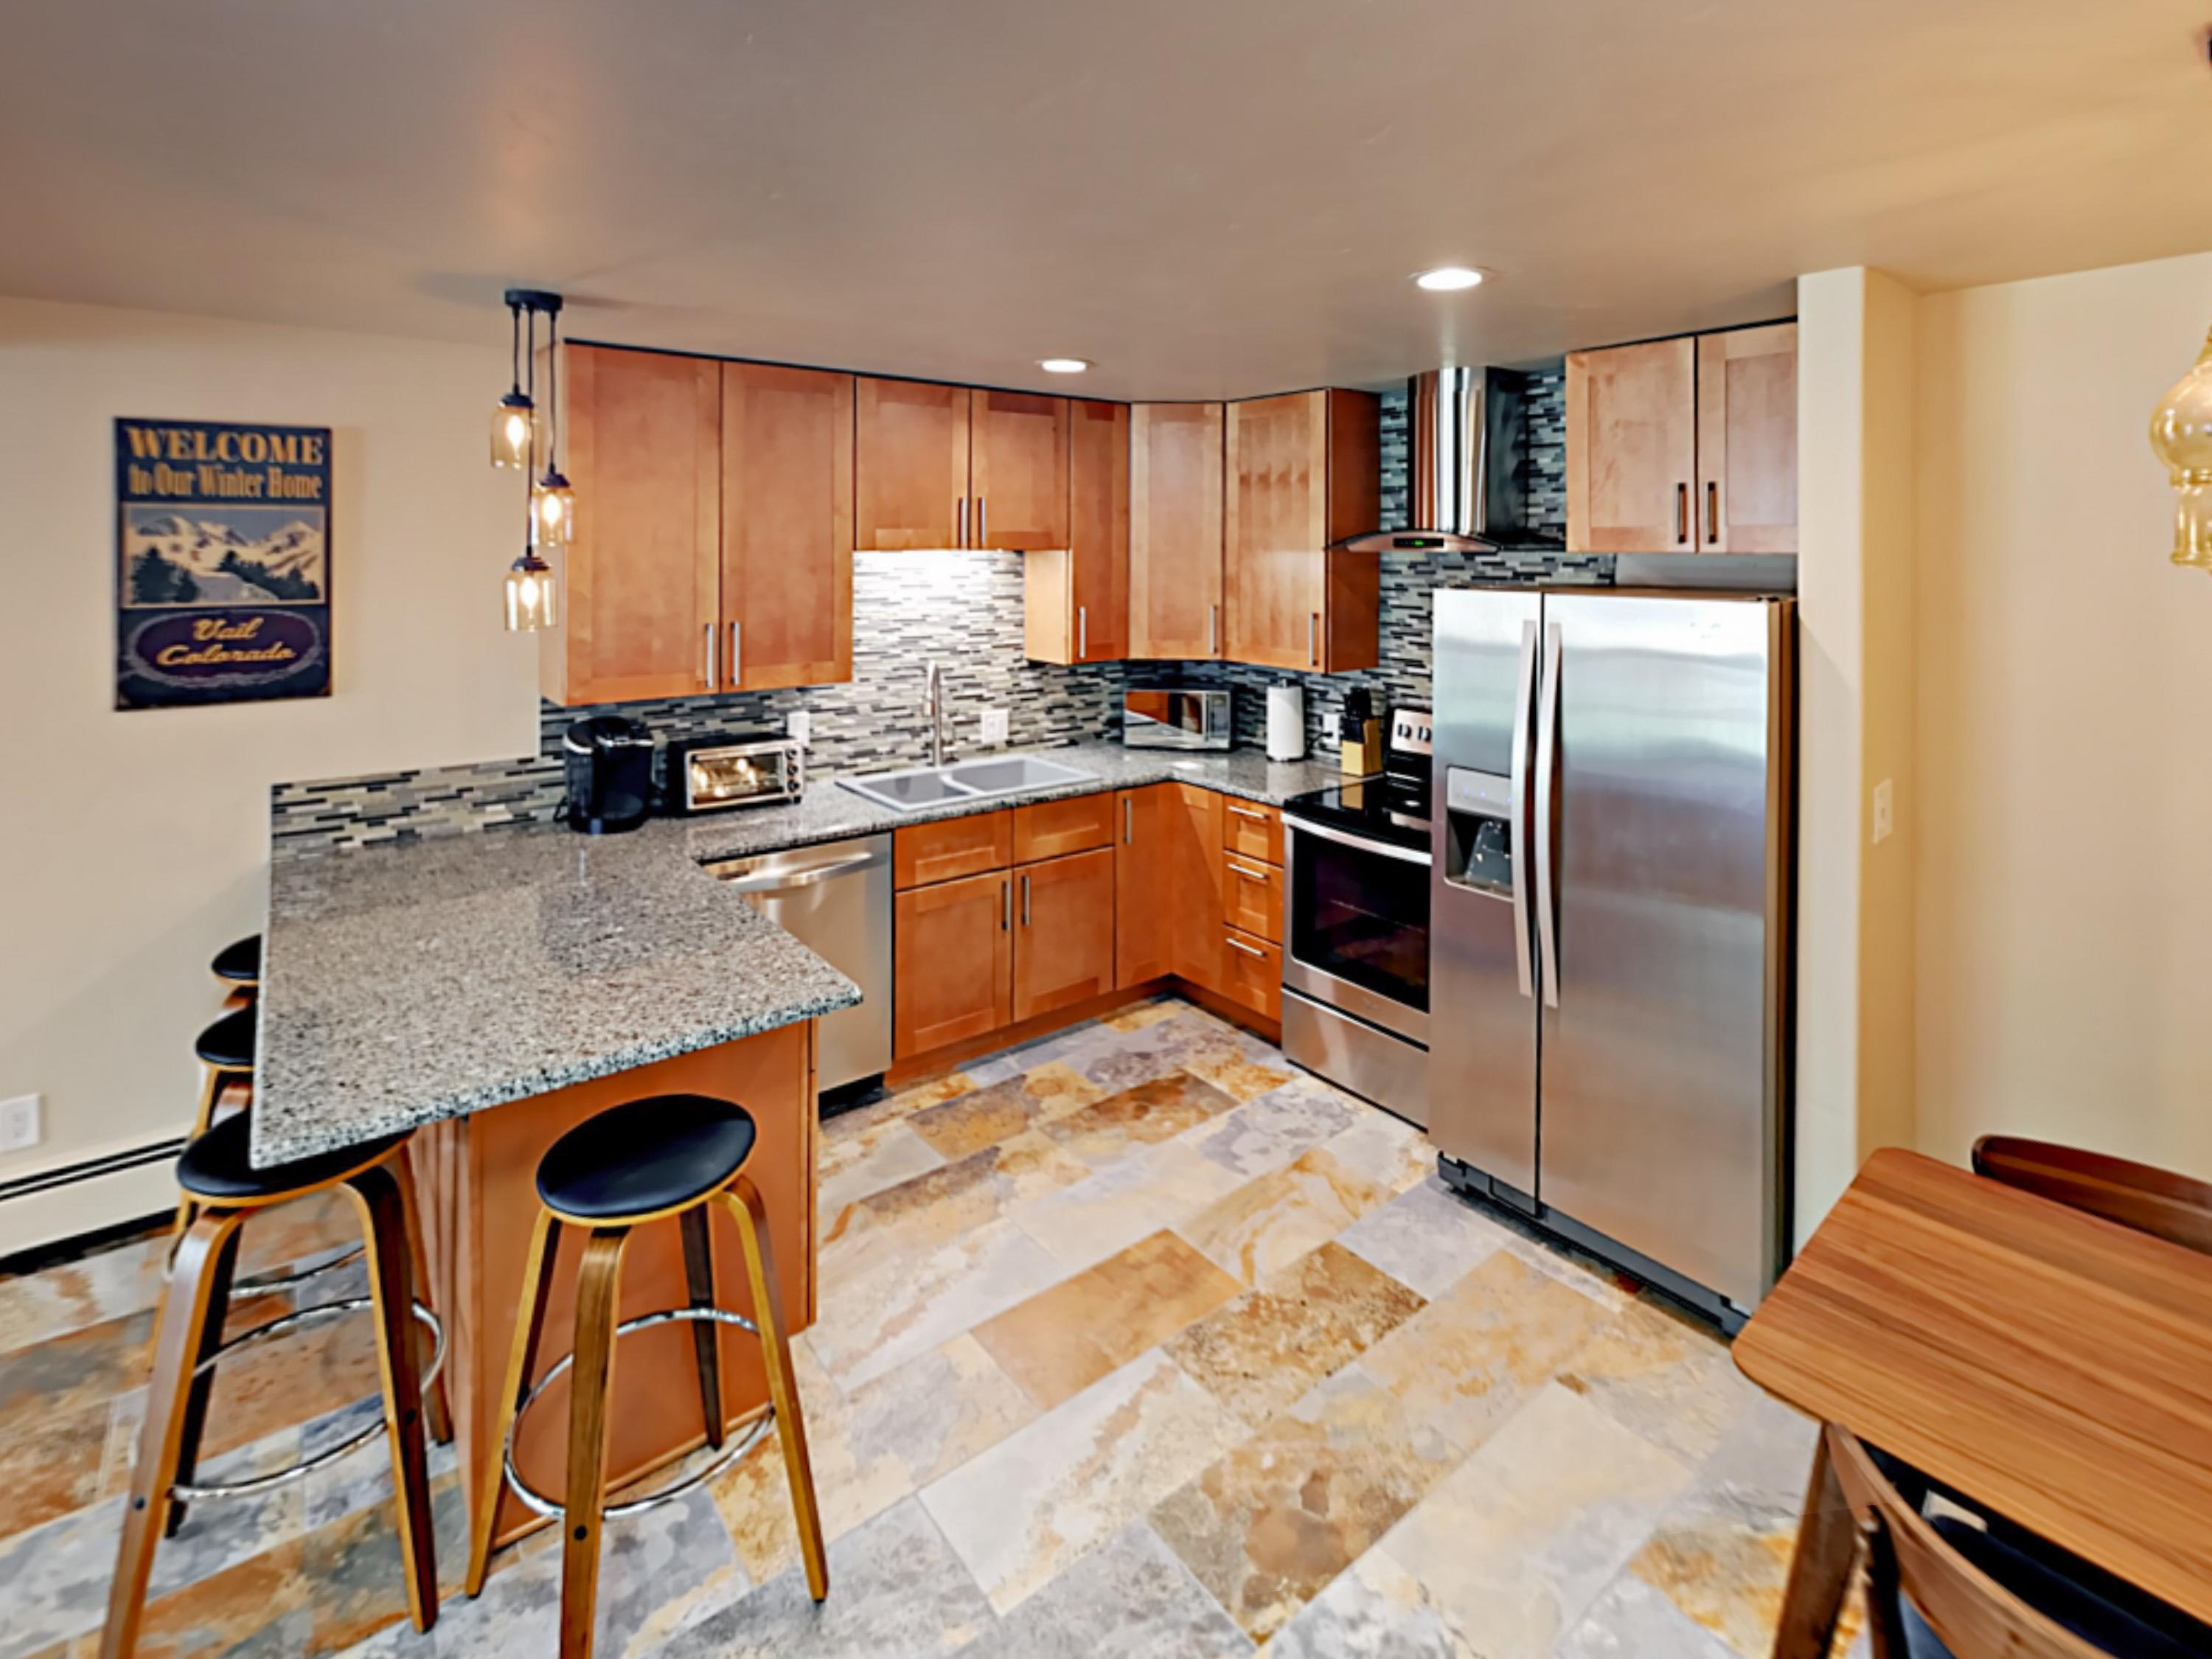 Fully equipped kitchen with breakfast bar for 4, a dual sink, and brand-new stainless steel appliances.